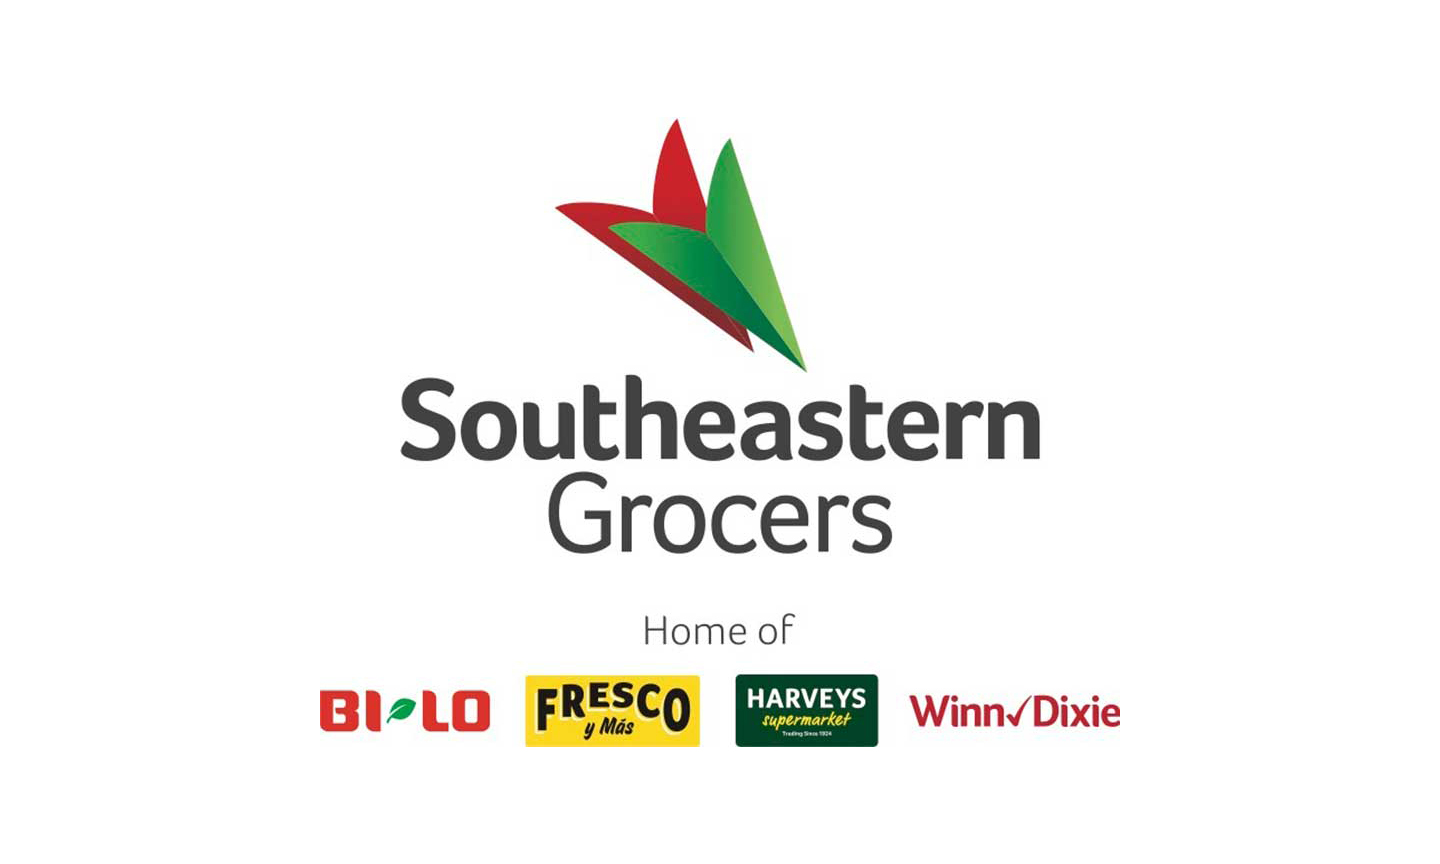 Southeastern Grocers commitment